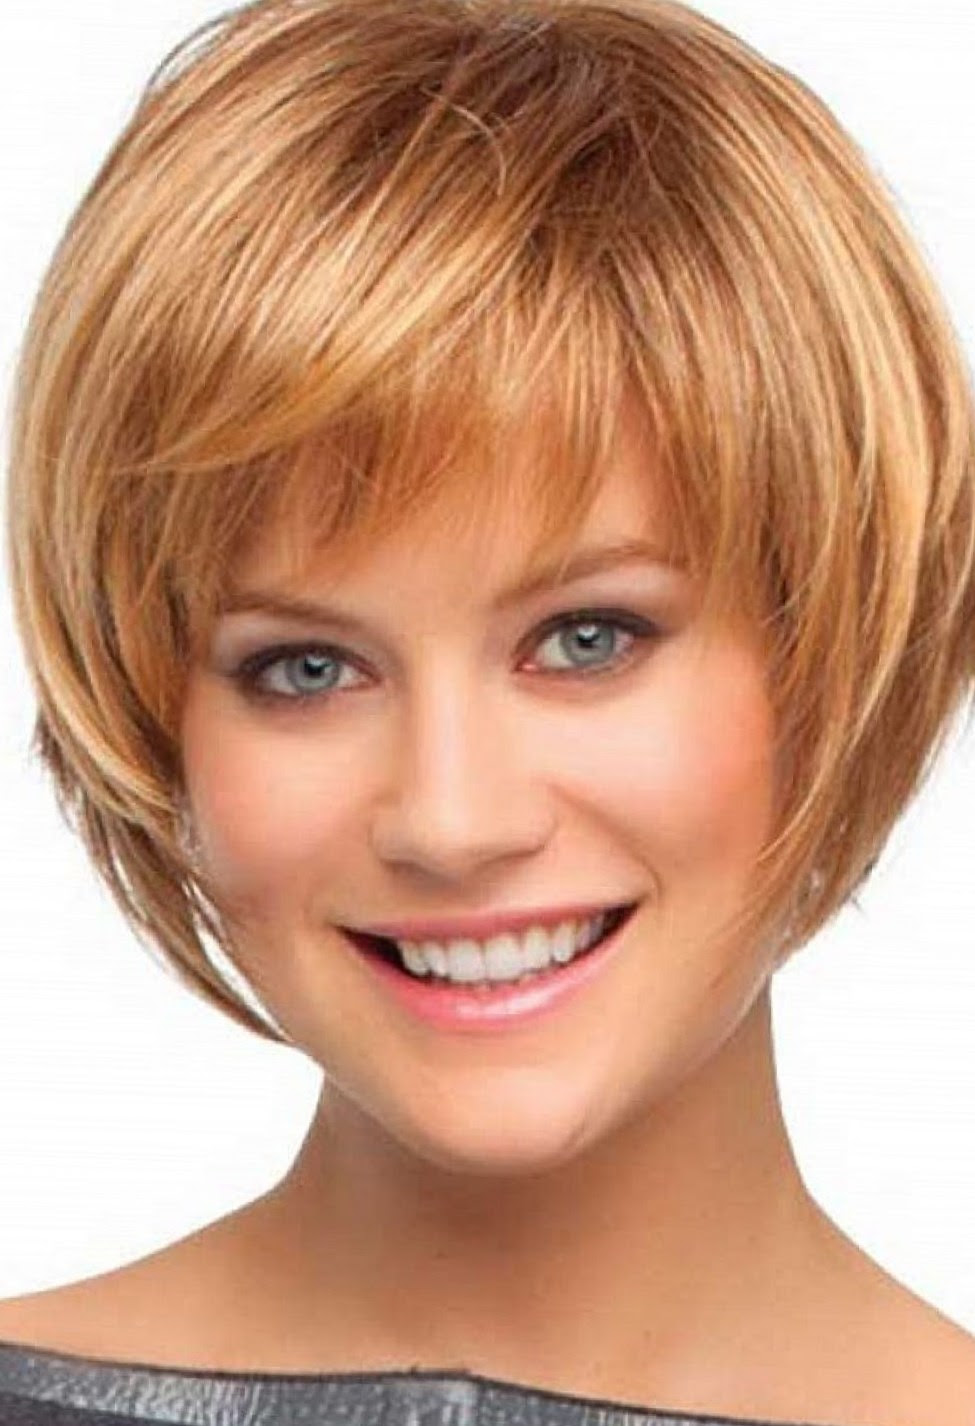 Best Short Bob Haircut 2012 2013 Short Hairstyles 2016 2017 Haircuts